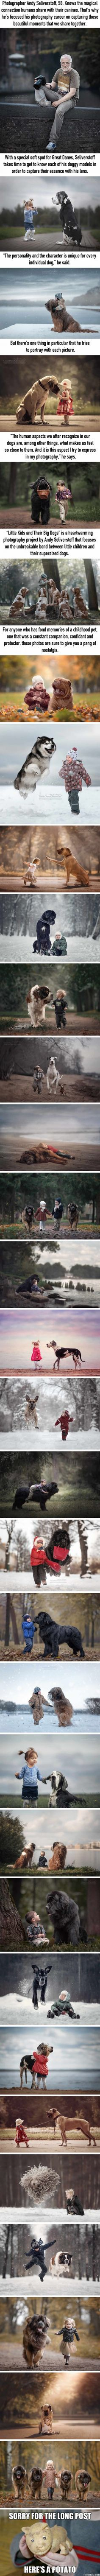 """""""Little Kids And Their Big Dogs"""" Shows The Magical Bond Between Kids & Canines (Andy Seliverstoff)"""